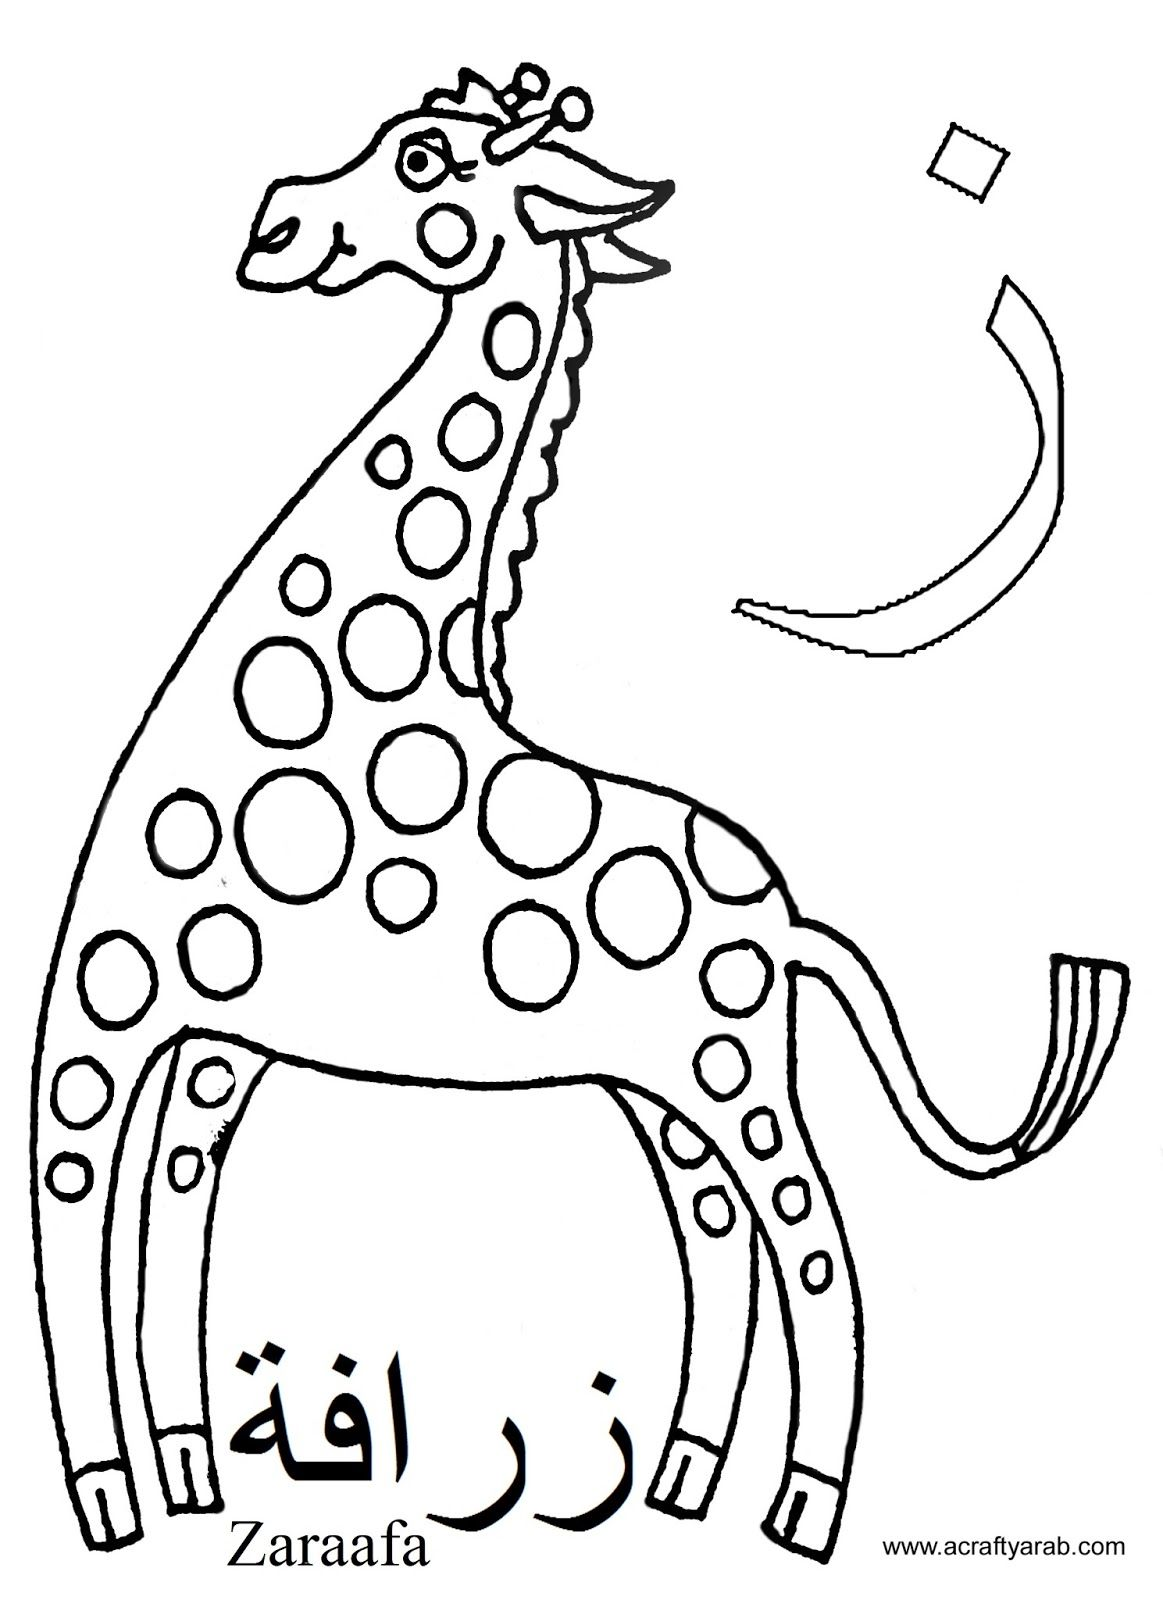 A Crafty Arab Arabic Alphabet Coloring Pages Yn Is